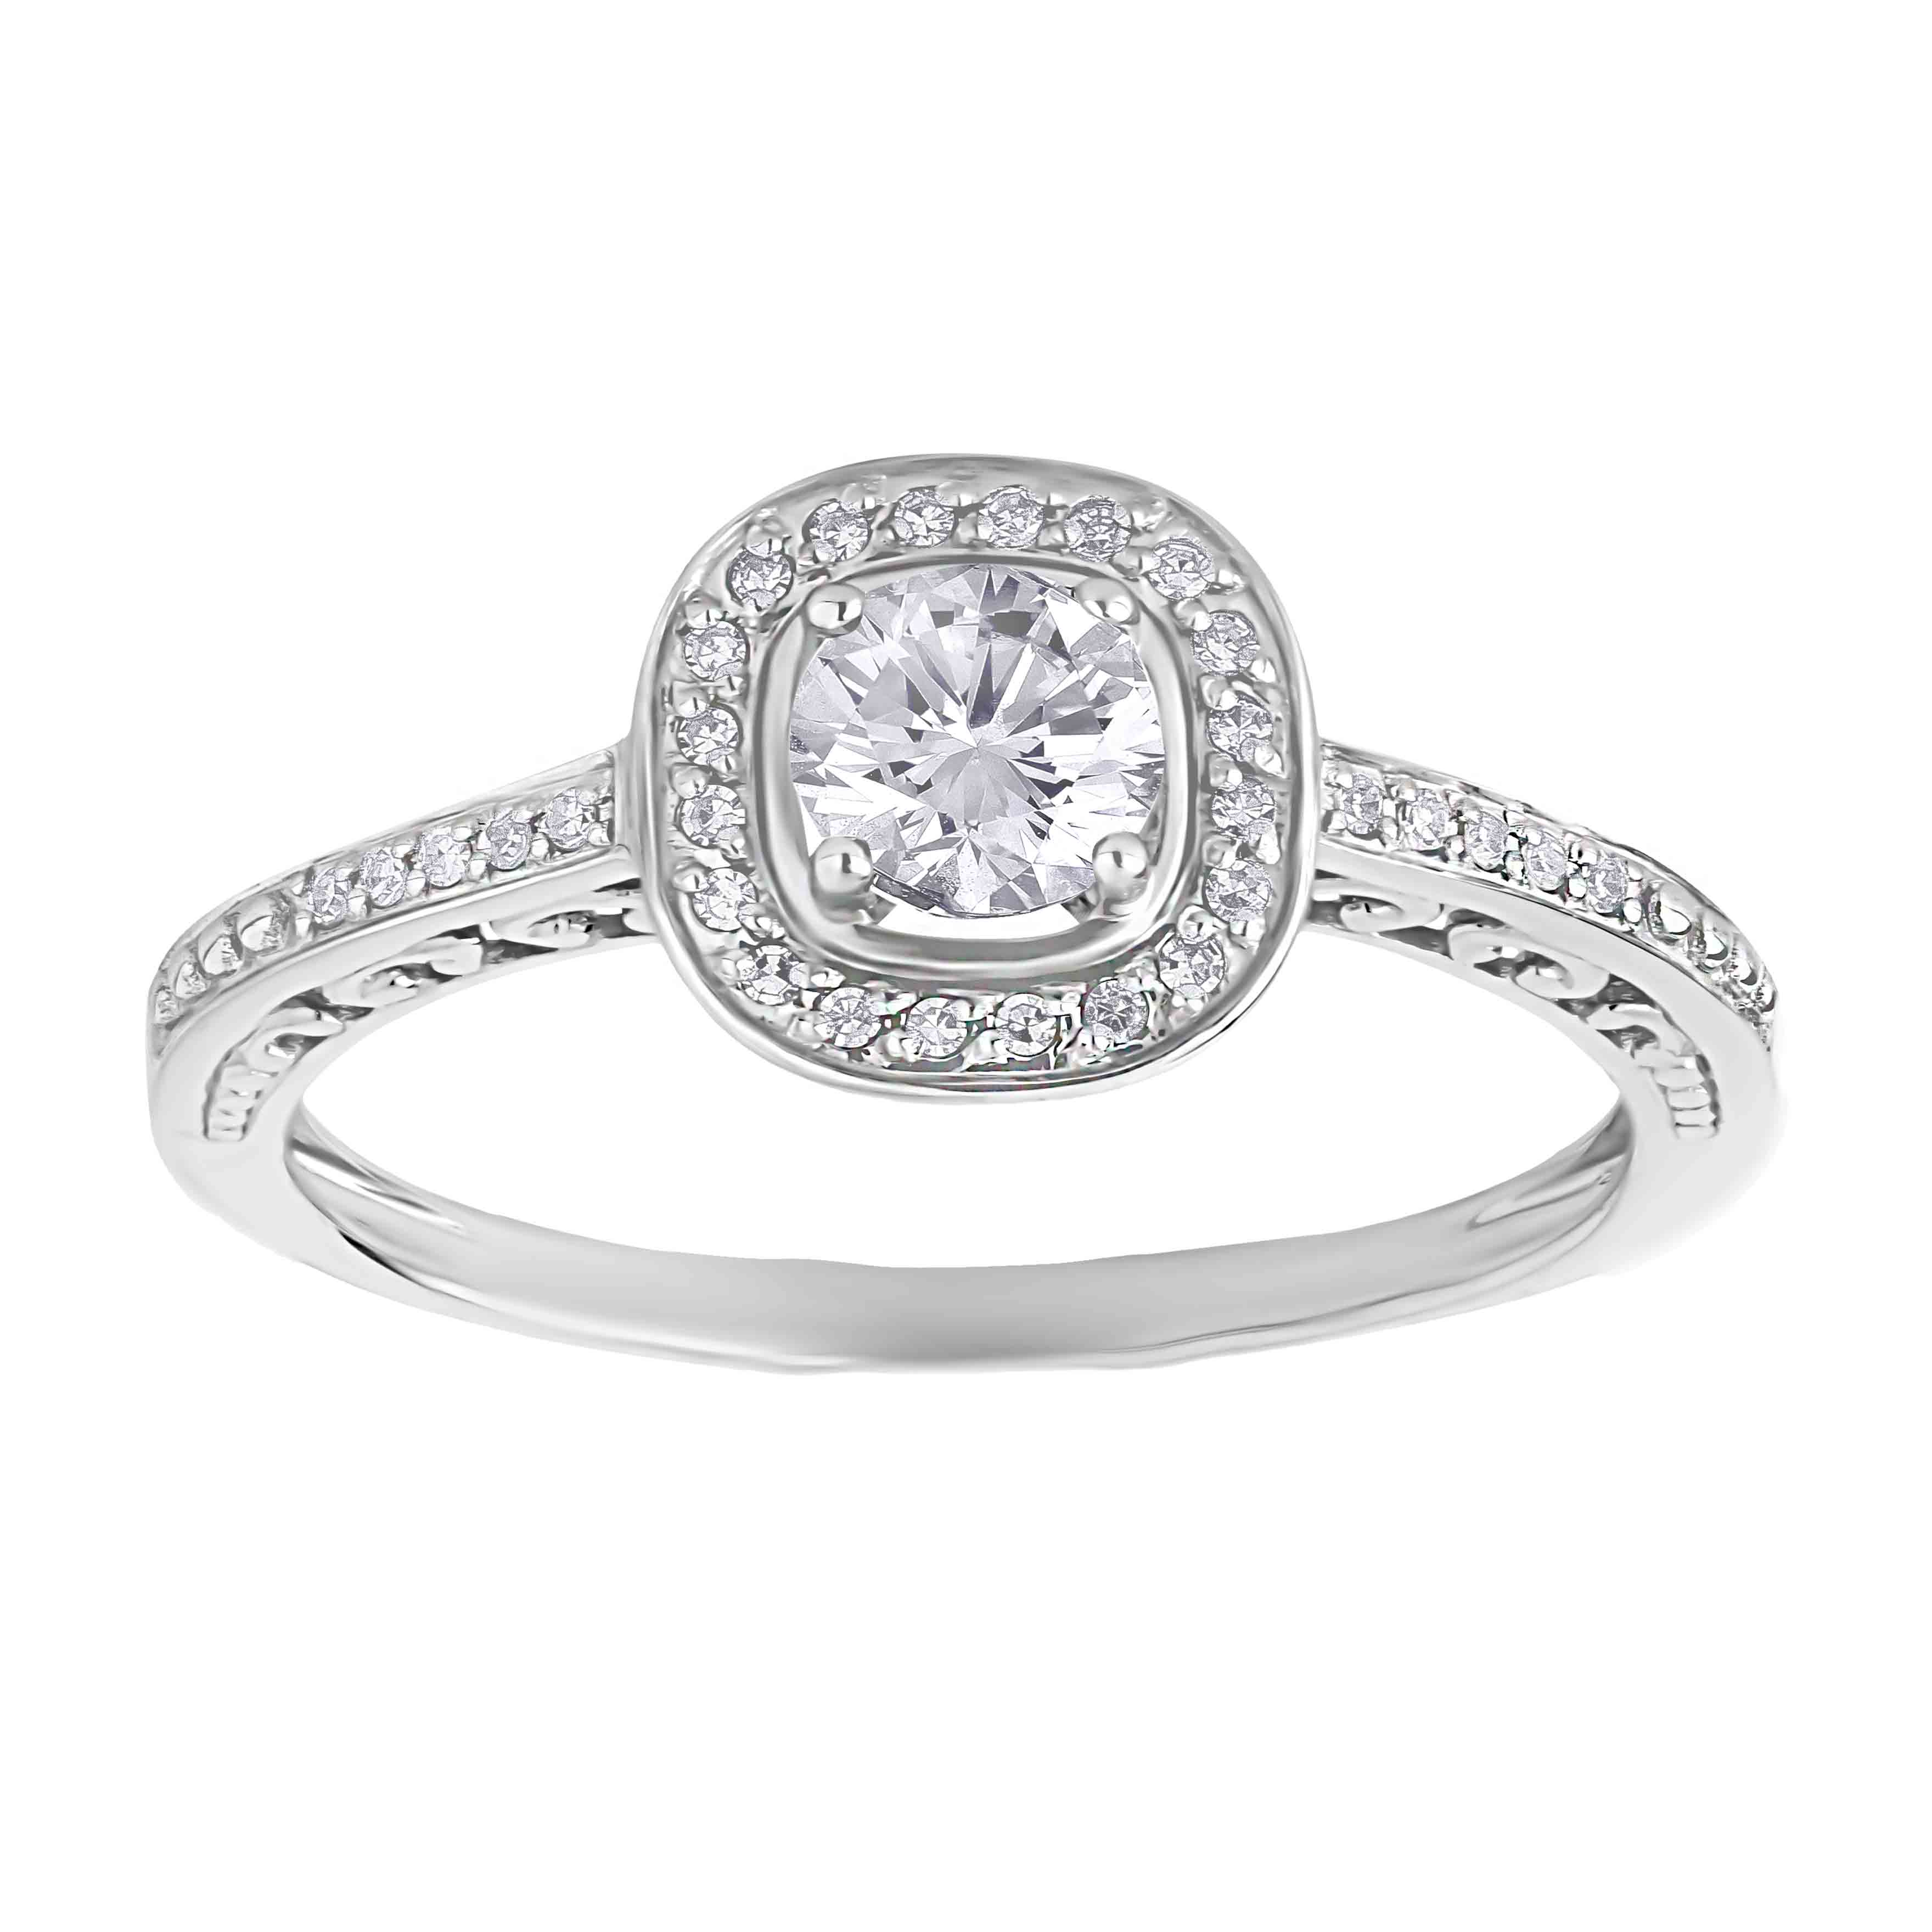 Affordable 14kt white gold Swarovski topaz and diamond engagement ring. View 2